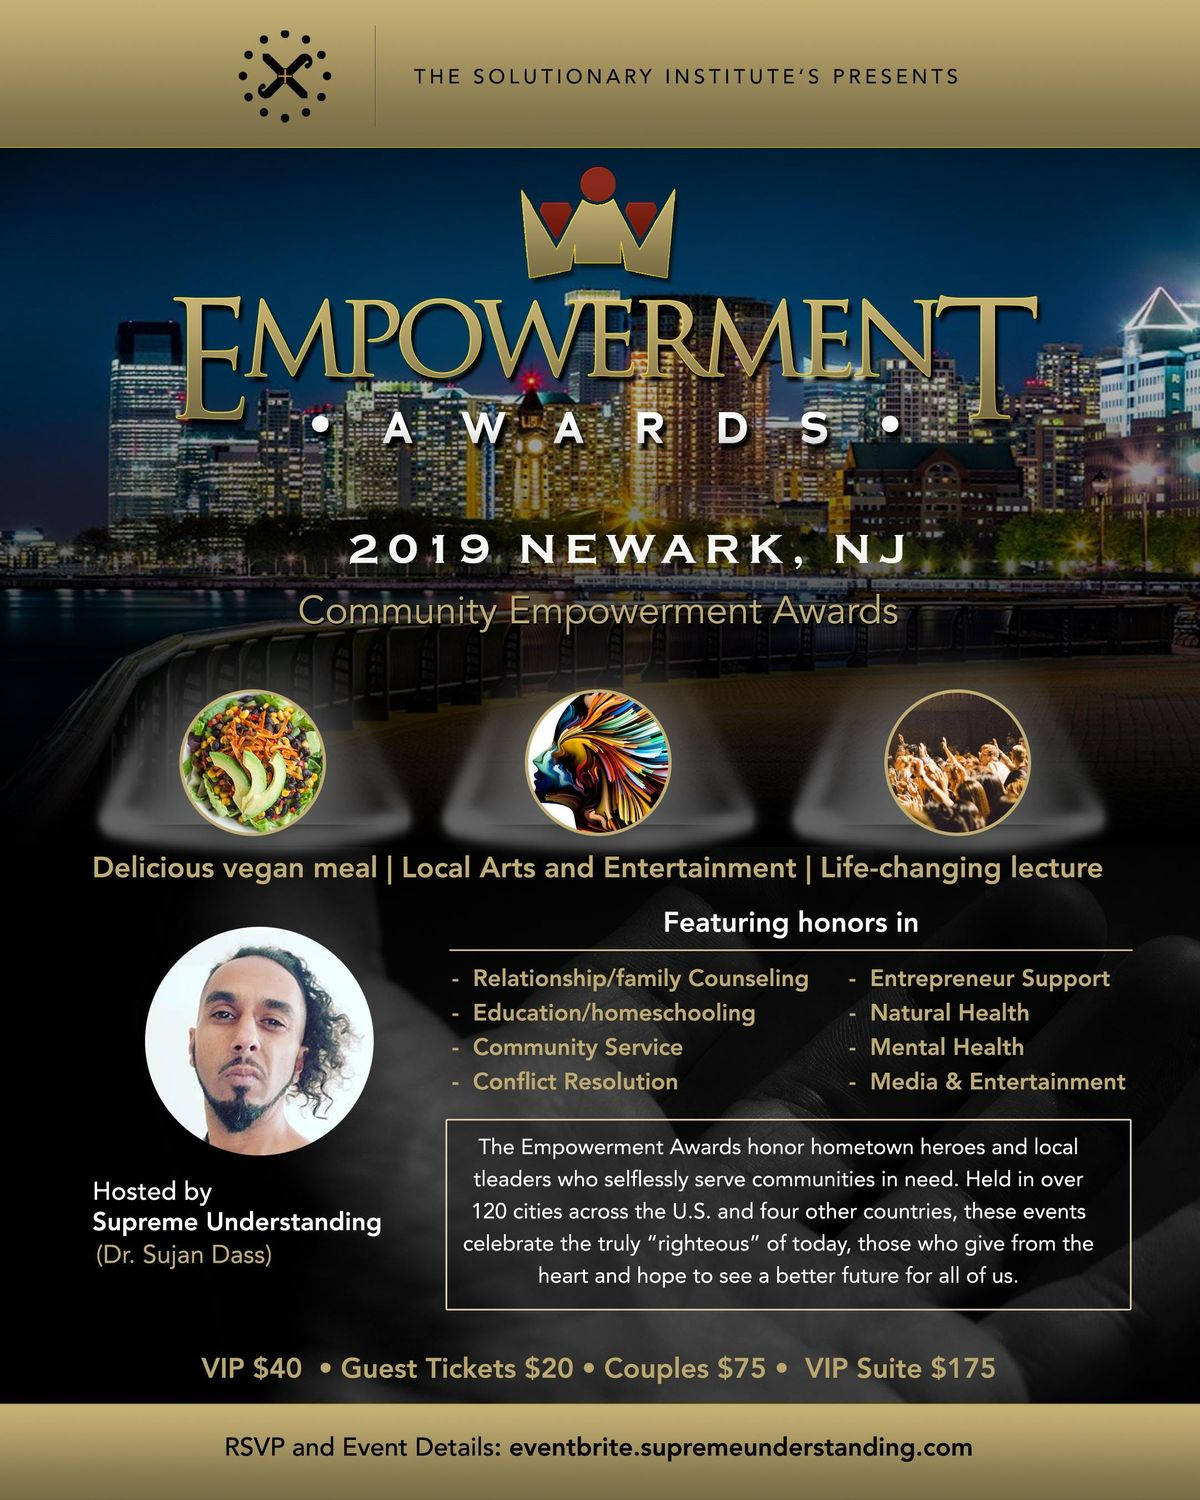 2019 Baltimore Community Empowerment Awards | Baltimore